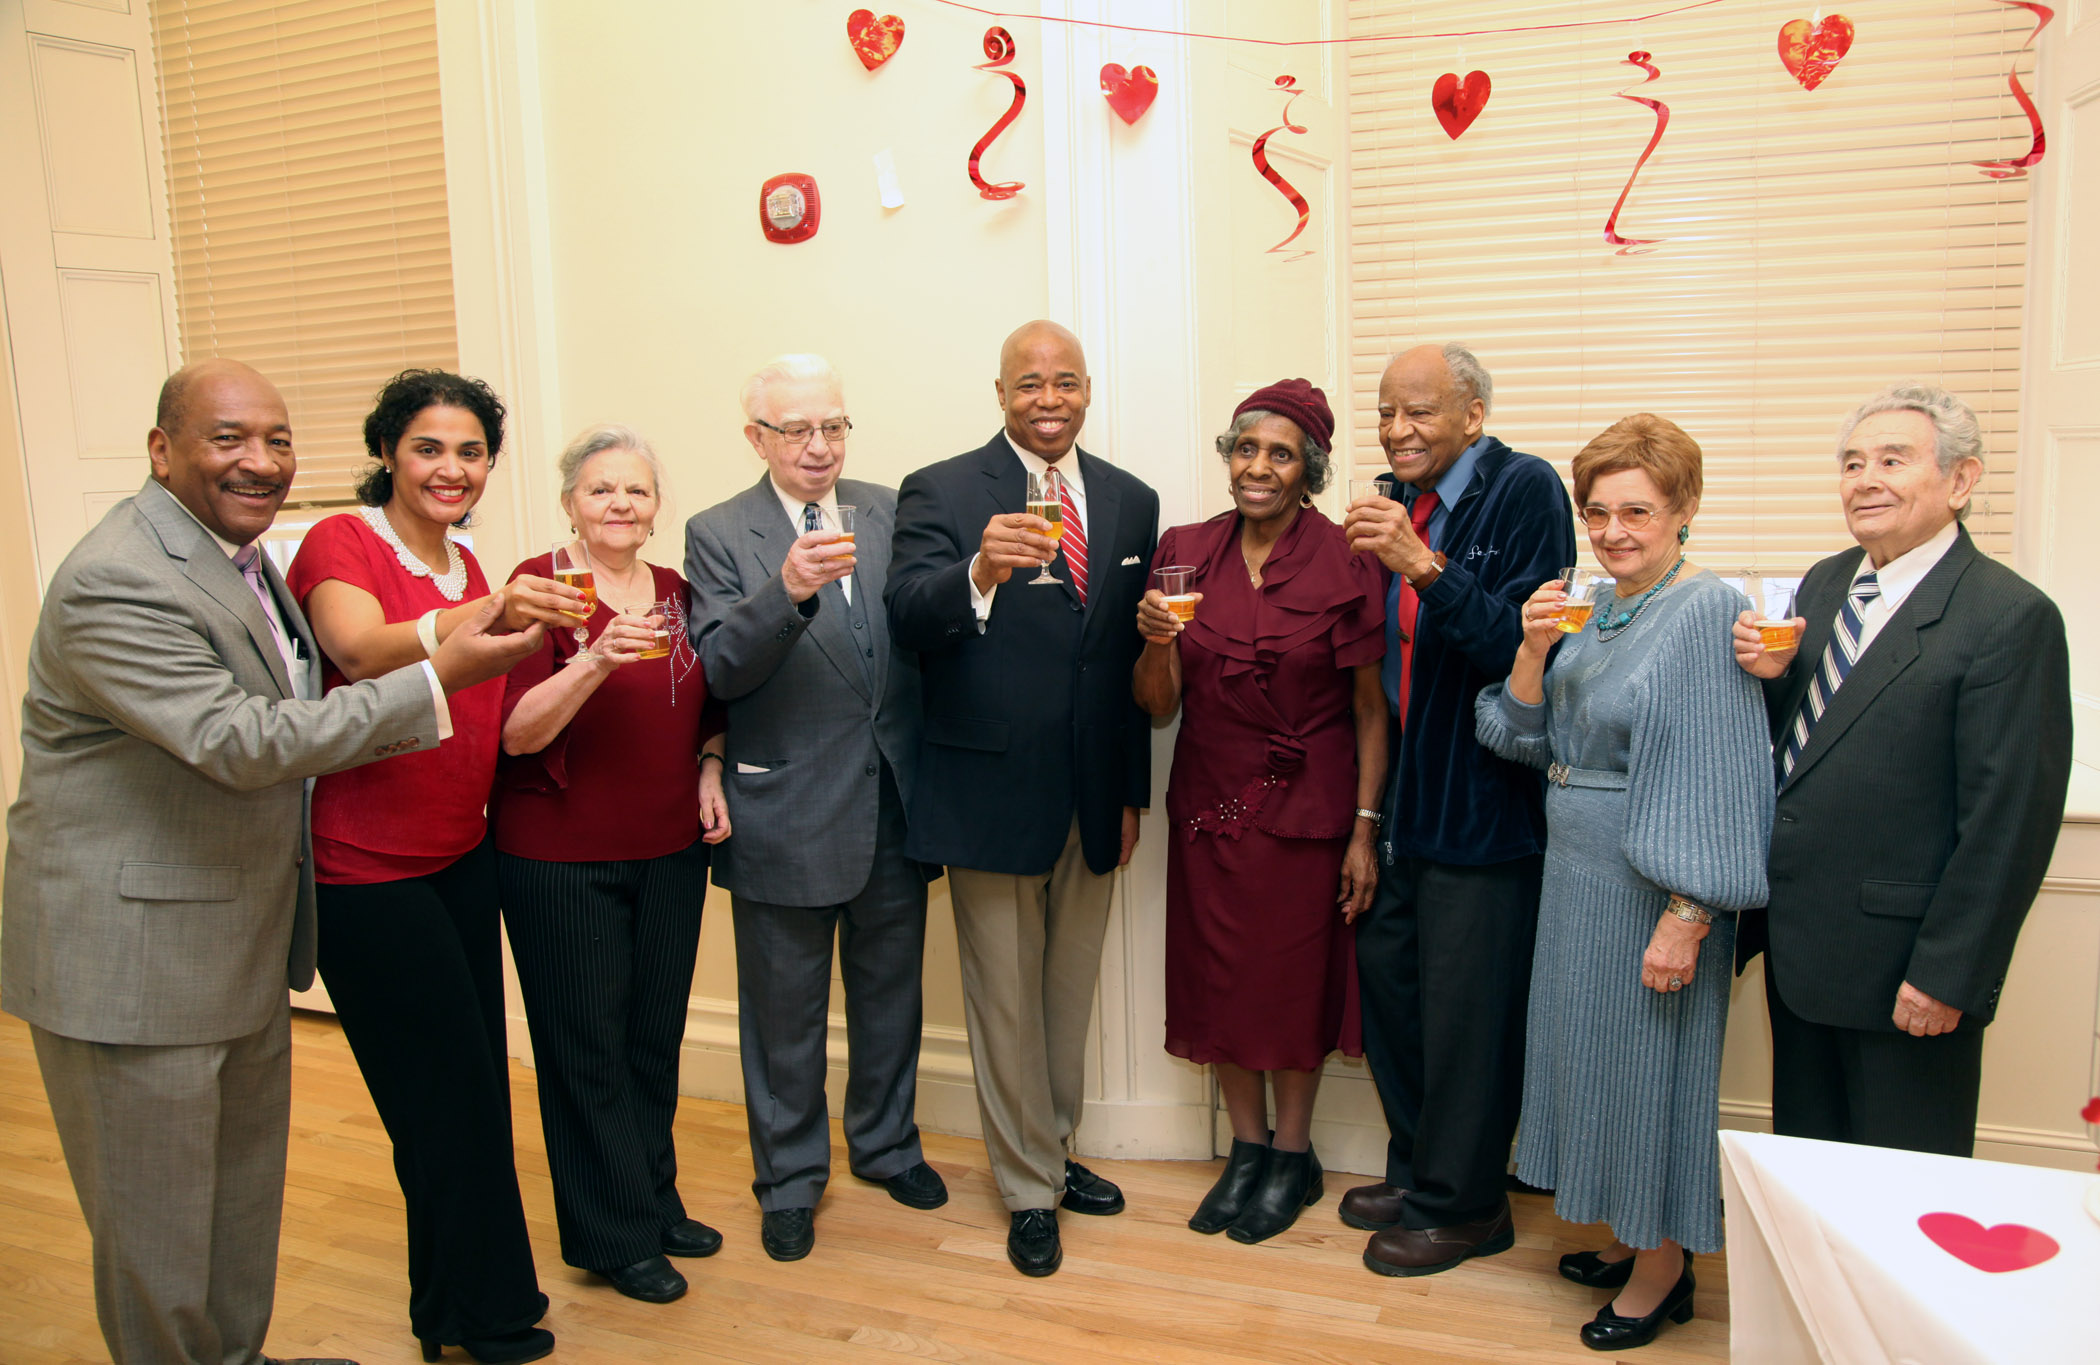 Brooklyn Borough President Eric Adams offers a sparkling cider toast during his Sweethearts celebration in honor of Valentine's Day at Borough Hall; he is joined by (from left to right) HealthFirst Vice President of External Affairs George Hulse and Deputy Brooklyn Borough President Diana Reyna, as well as couples married for 50 years or more. Photo Credit: Kathryn Kirk/Brooklyn BP's Office